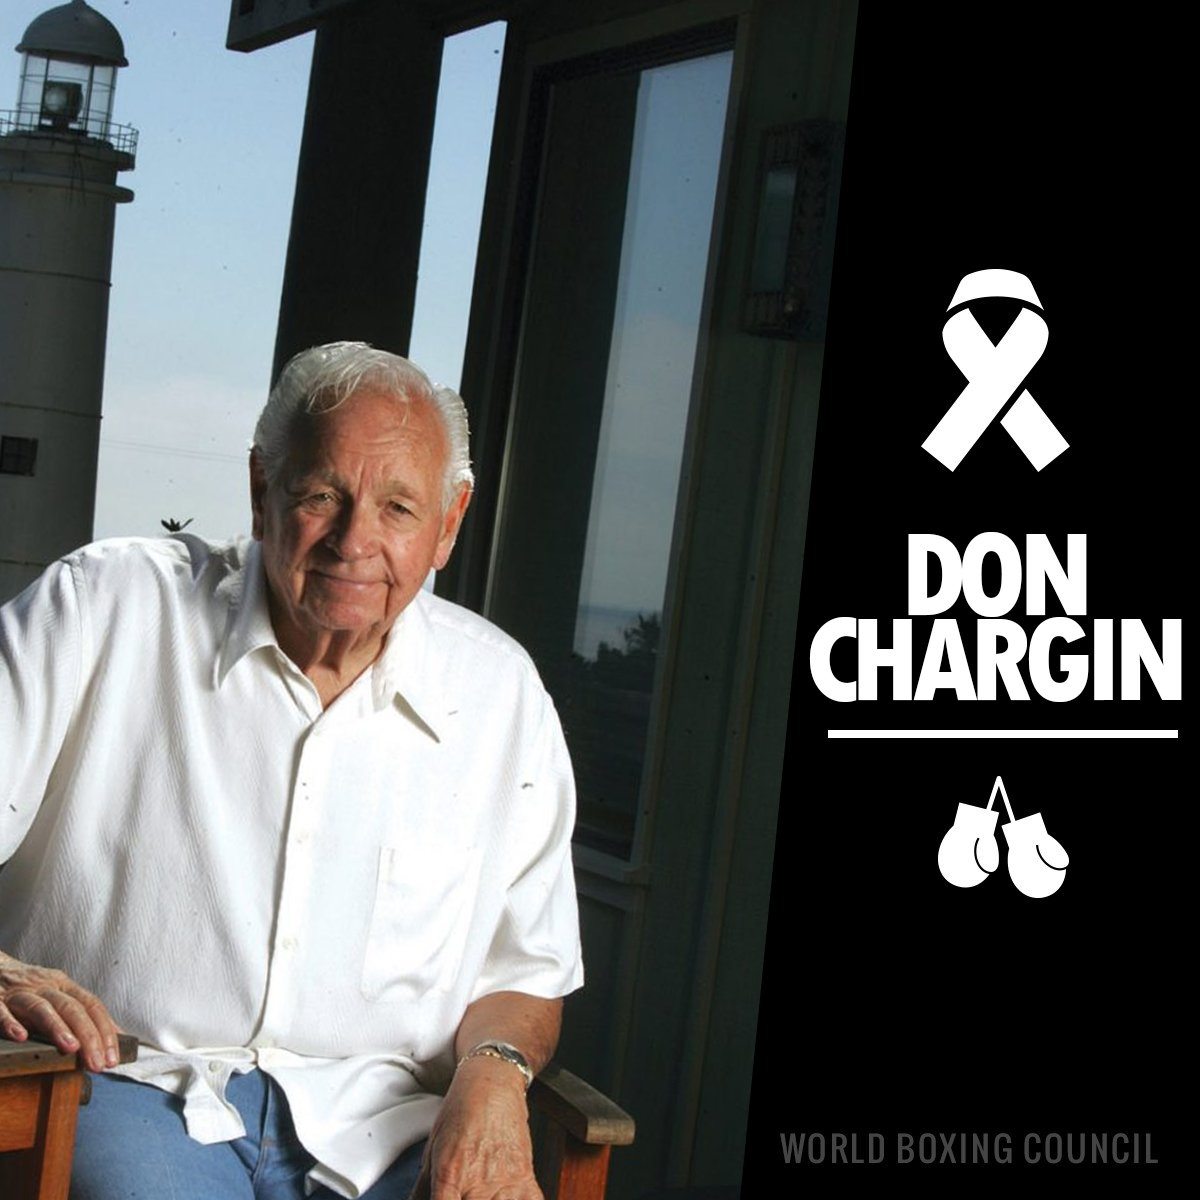 Don Chargin - The International Boxing Hall of Fame announced its flags will fly at half-staff in memory of promoter / matchmaker Don Chargin, who passed away yesterday (September 28) at Sierra Vista Hospital in San Luis Obispo, CA. He was 90.